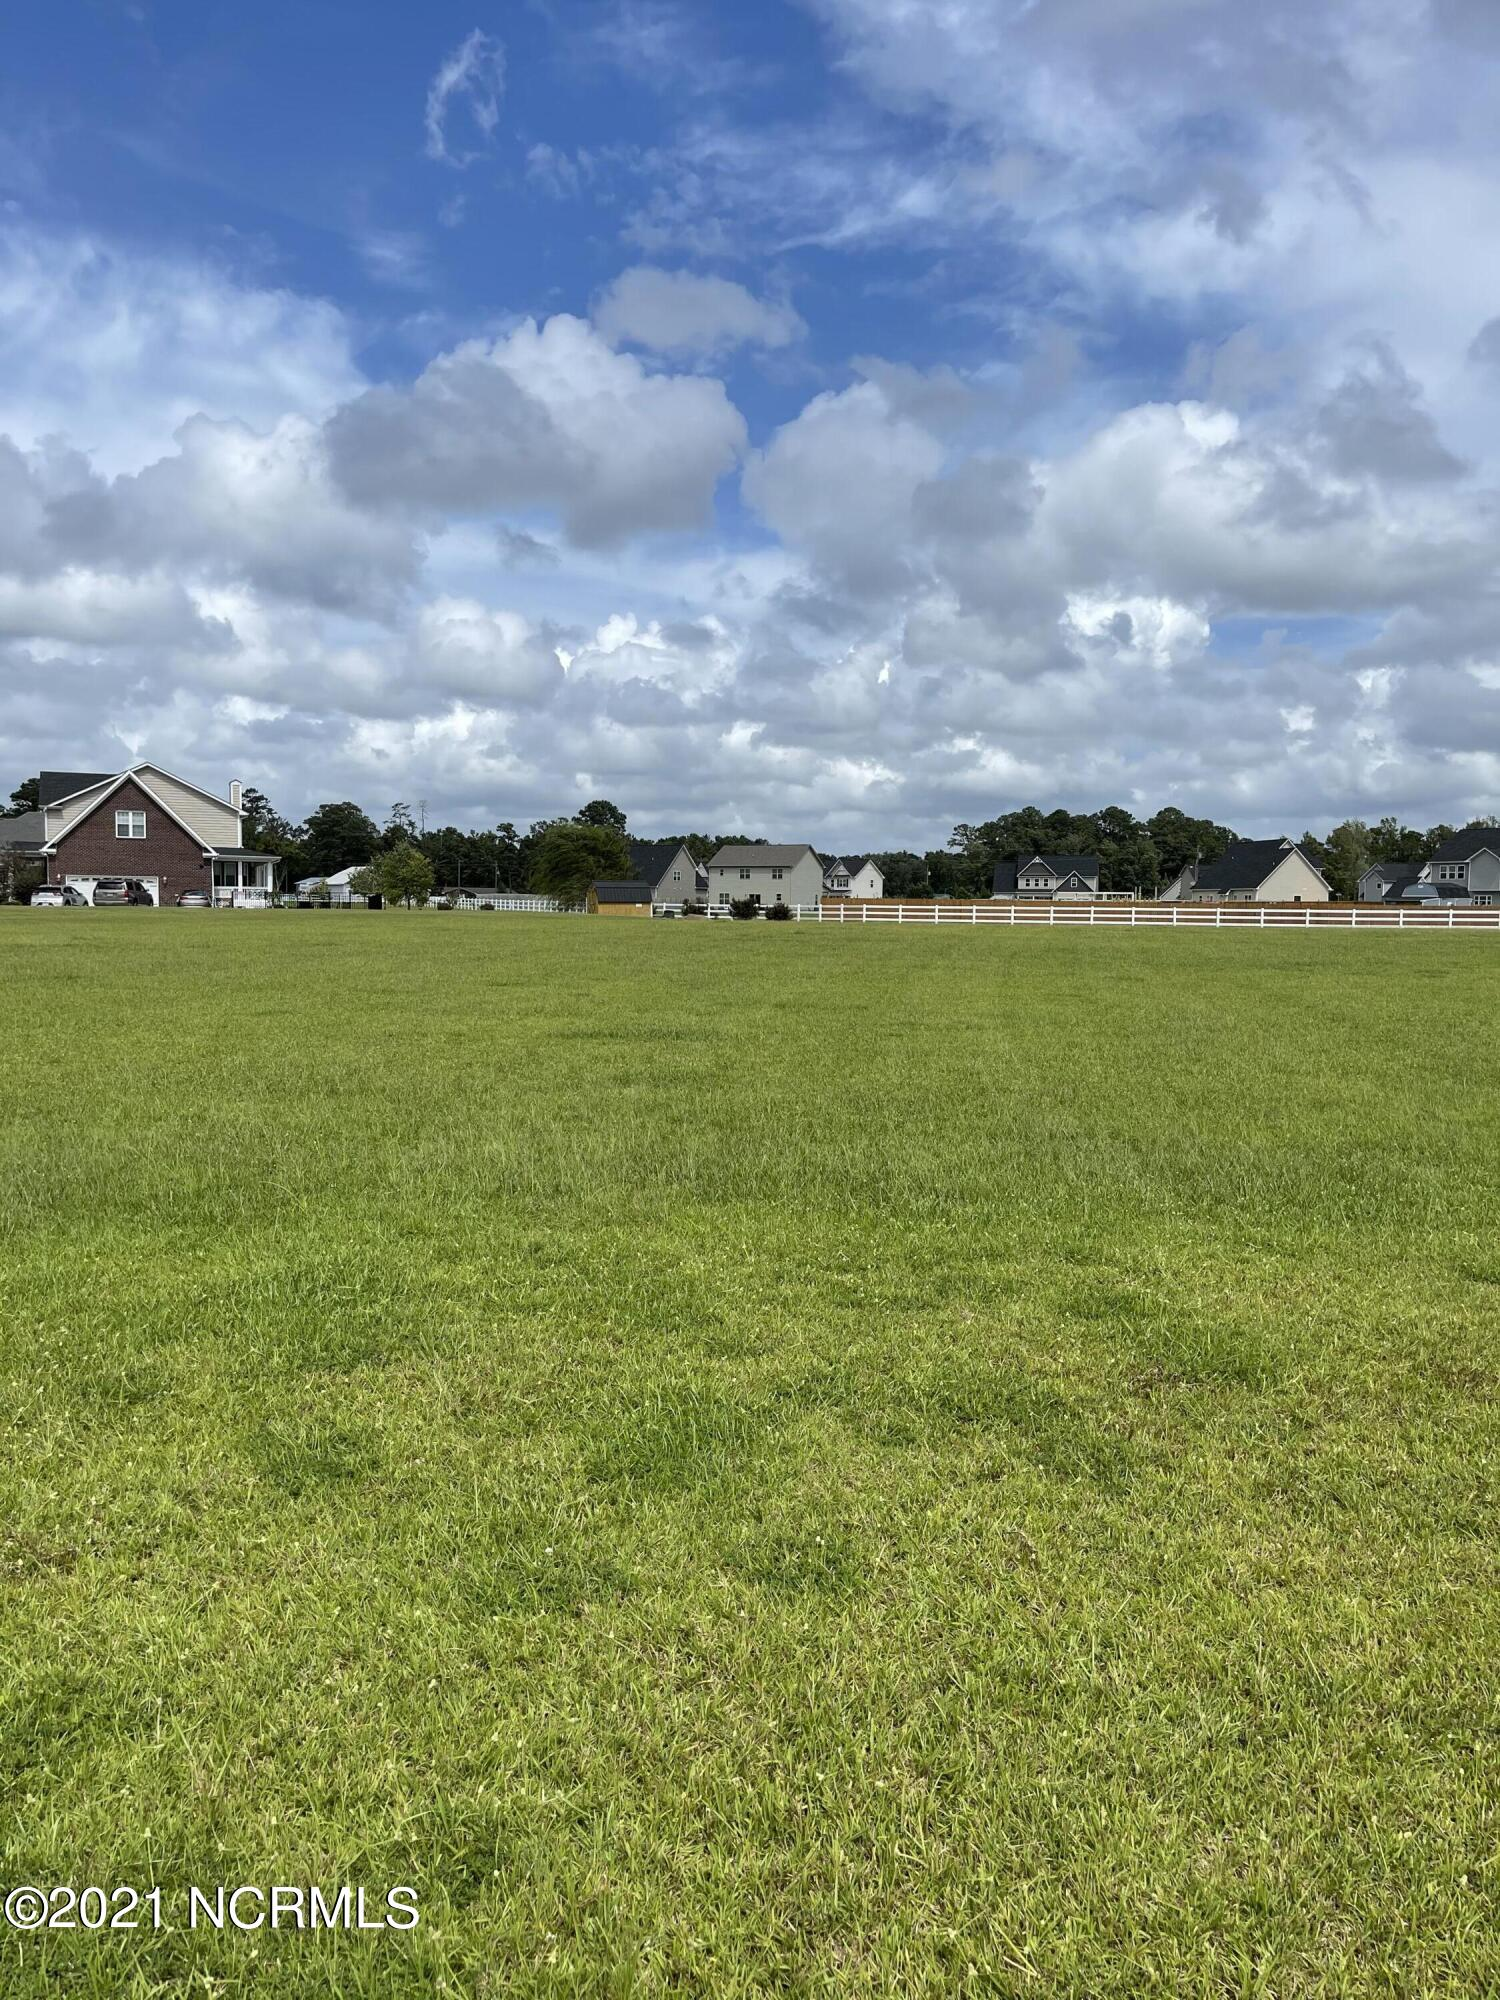 READY,SET, GO! Estate size lot well over an acre in the pristine Coles Farm Community. Minutes from several gates to Camp Lejeune, but definitely a country feel. Lot is level and cleared. An expired septic permit can easily be remedied and you are off to the races to build your dream home.